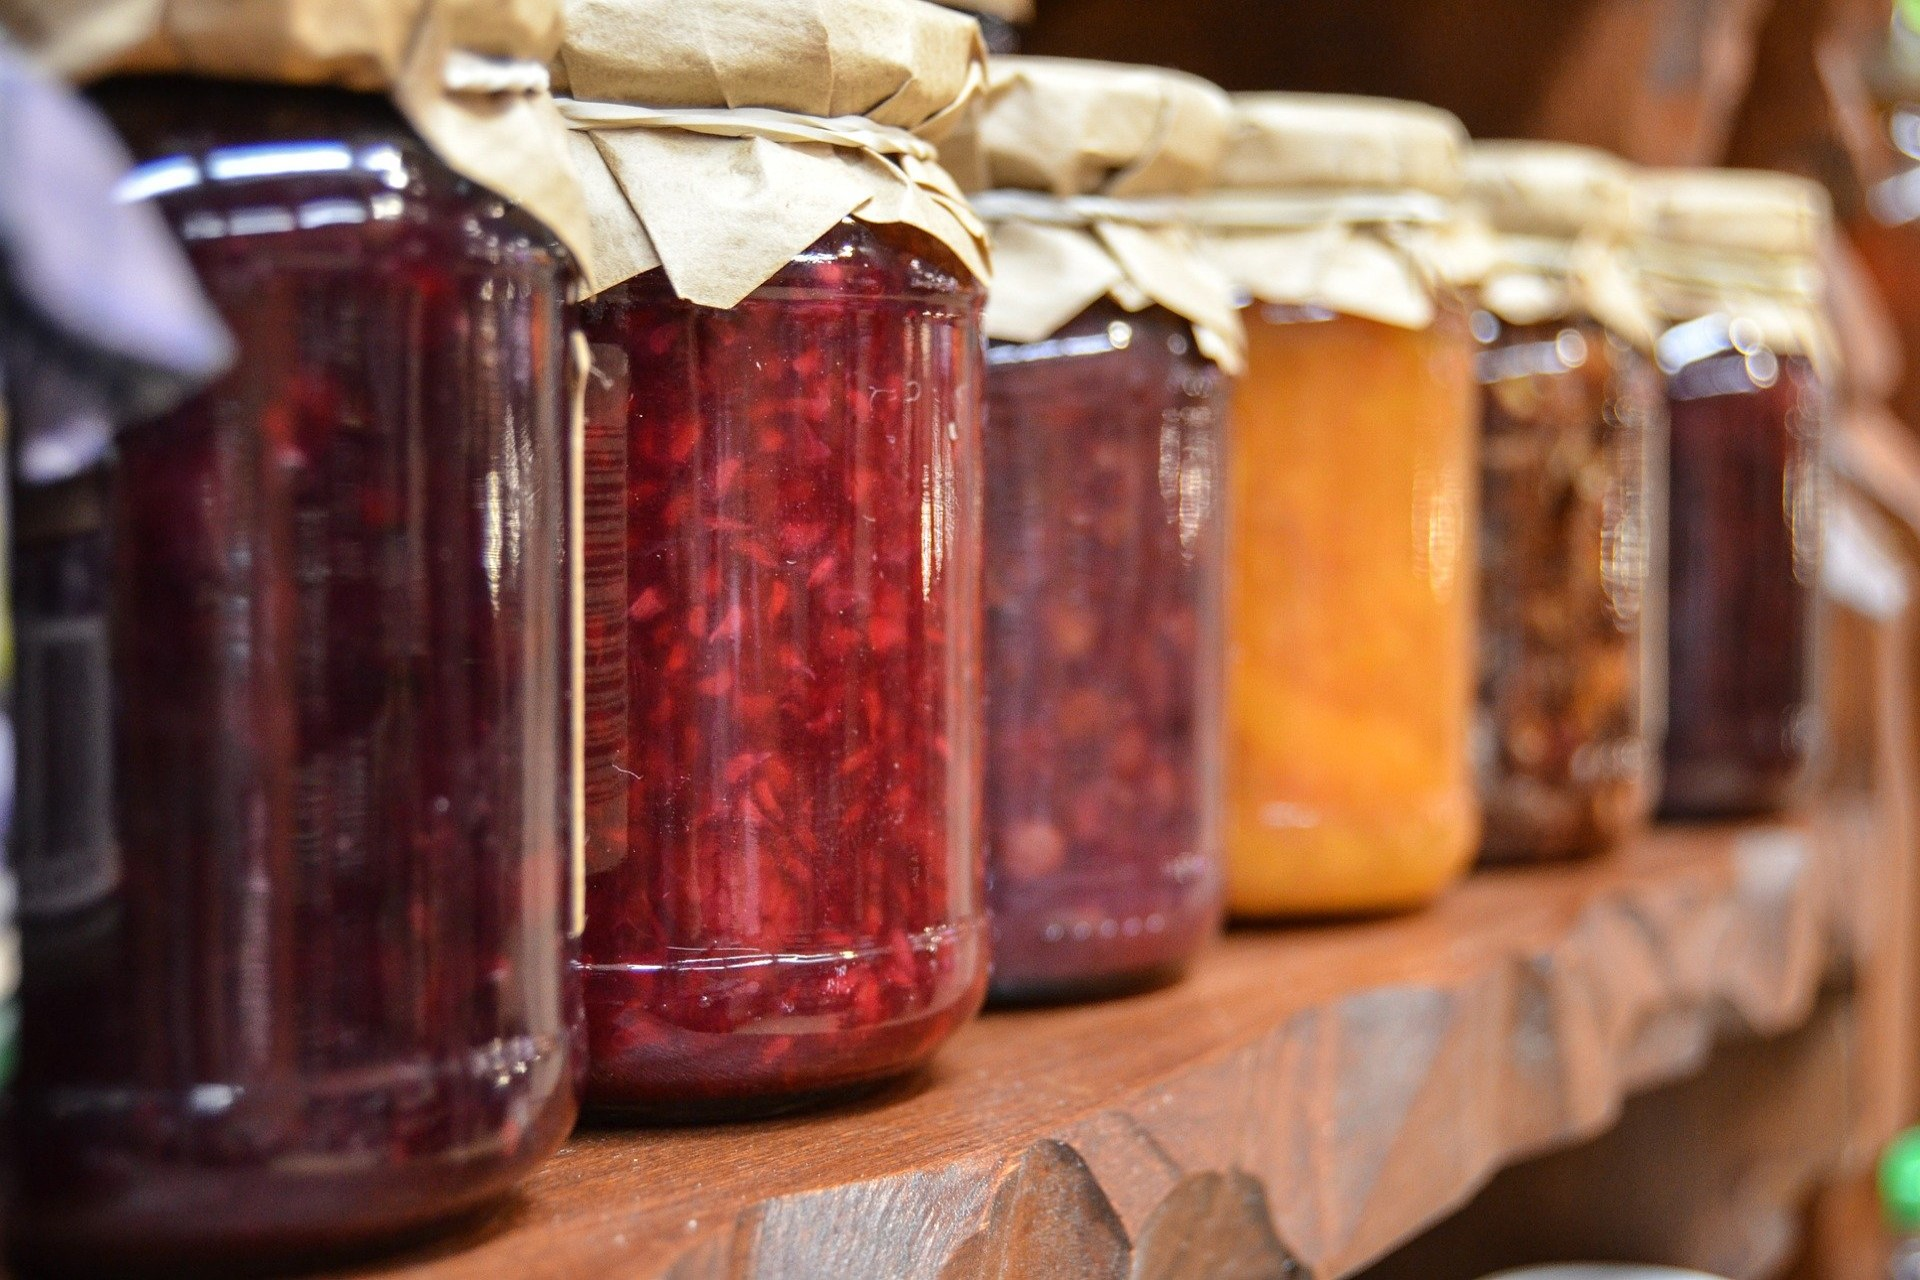 Homemade jams and preserves from Cotswolds Hampers